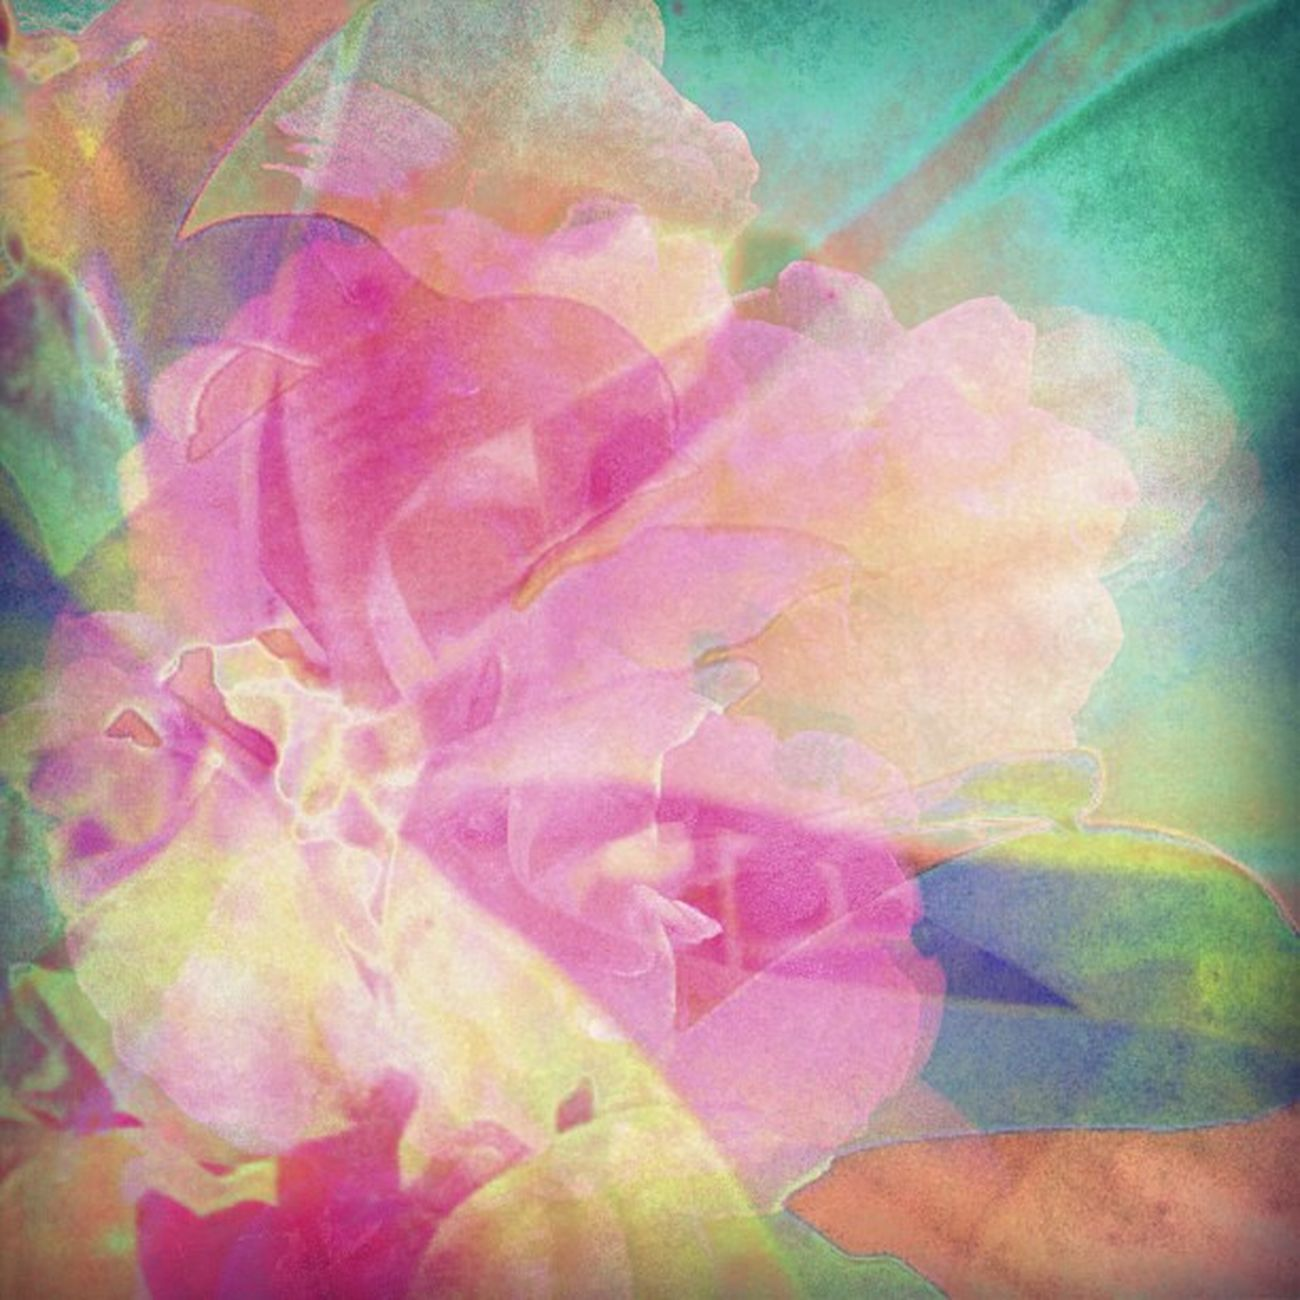 Softly Soaring on Angel Wings Happycolortrip Coloronroids Abstracto Dhexpose All_shots Ace_ StayABSTRACT Deadlydivas Abstractart Ig_one Gang_family Icatching Editjunky Femme_elite Instauno Weareinheaven Igsg You_nique_edits Bd Mi55flowerz Abstracters_anonymous Edit_fever Abstract_buff Abstractobsession Instaabstract Ig_captures